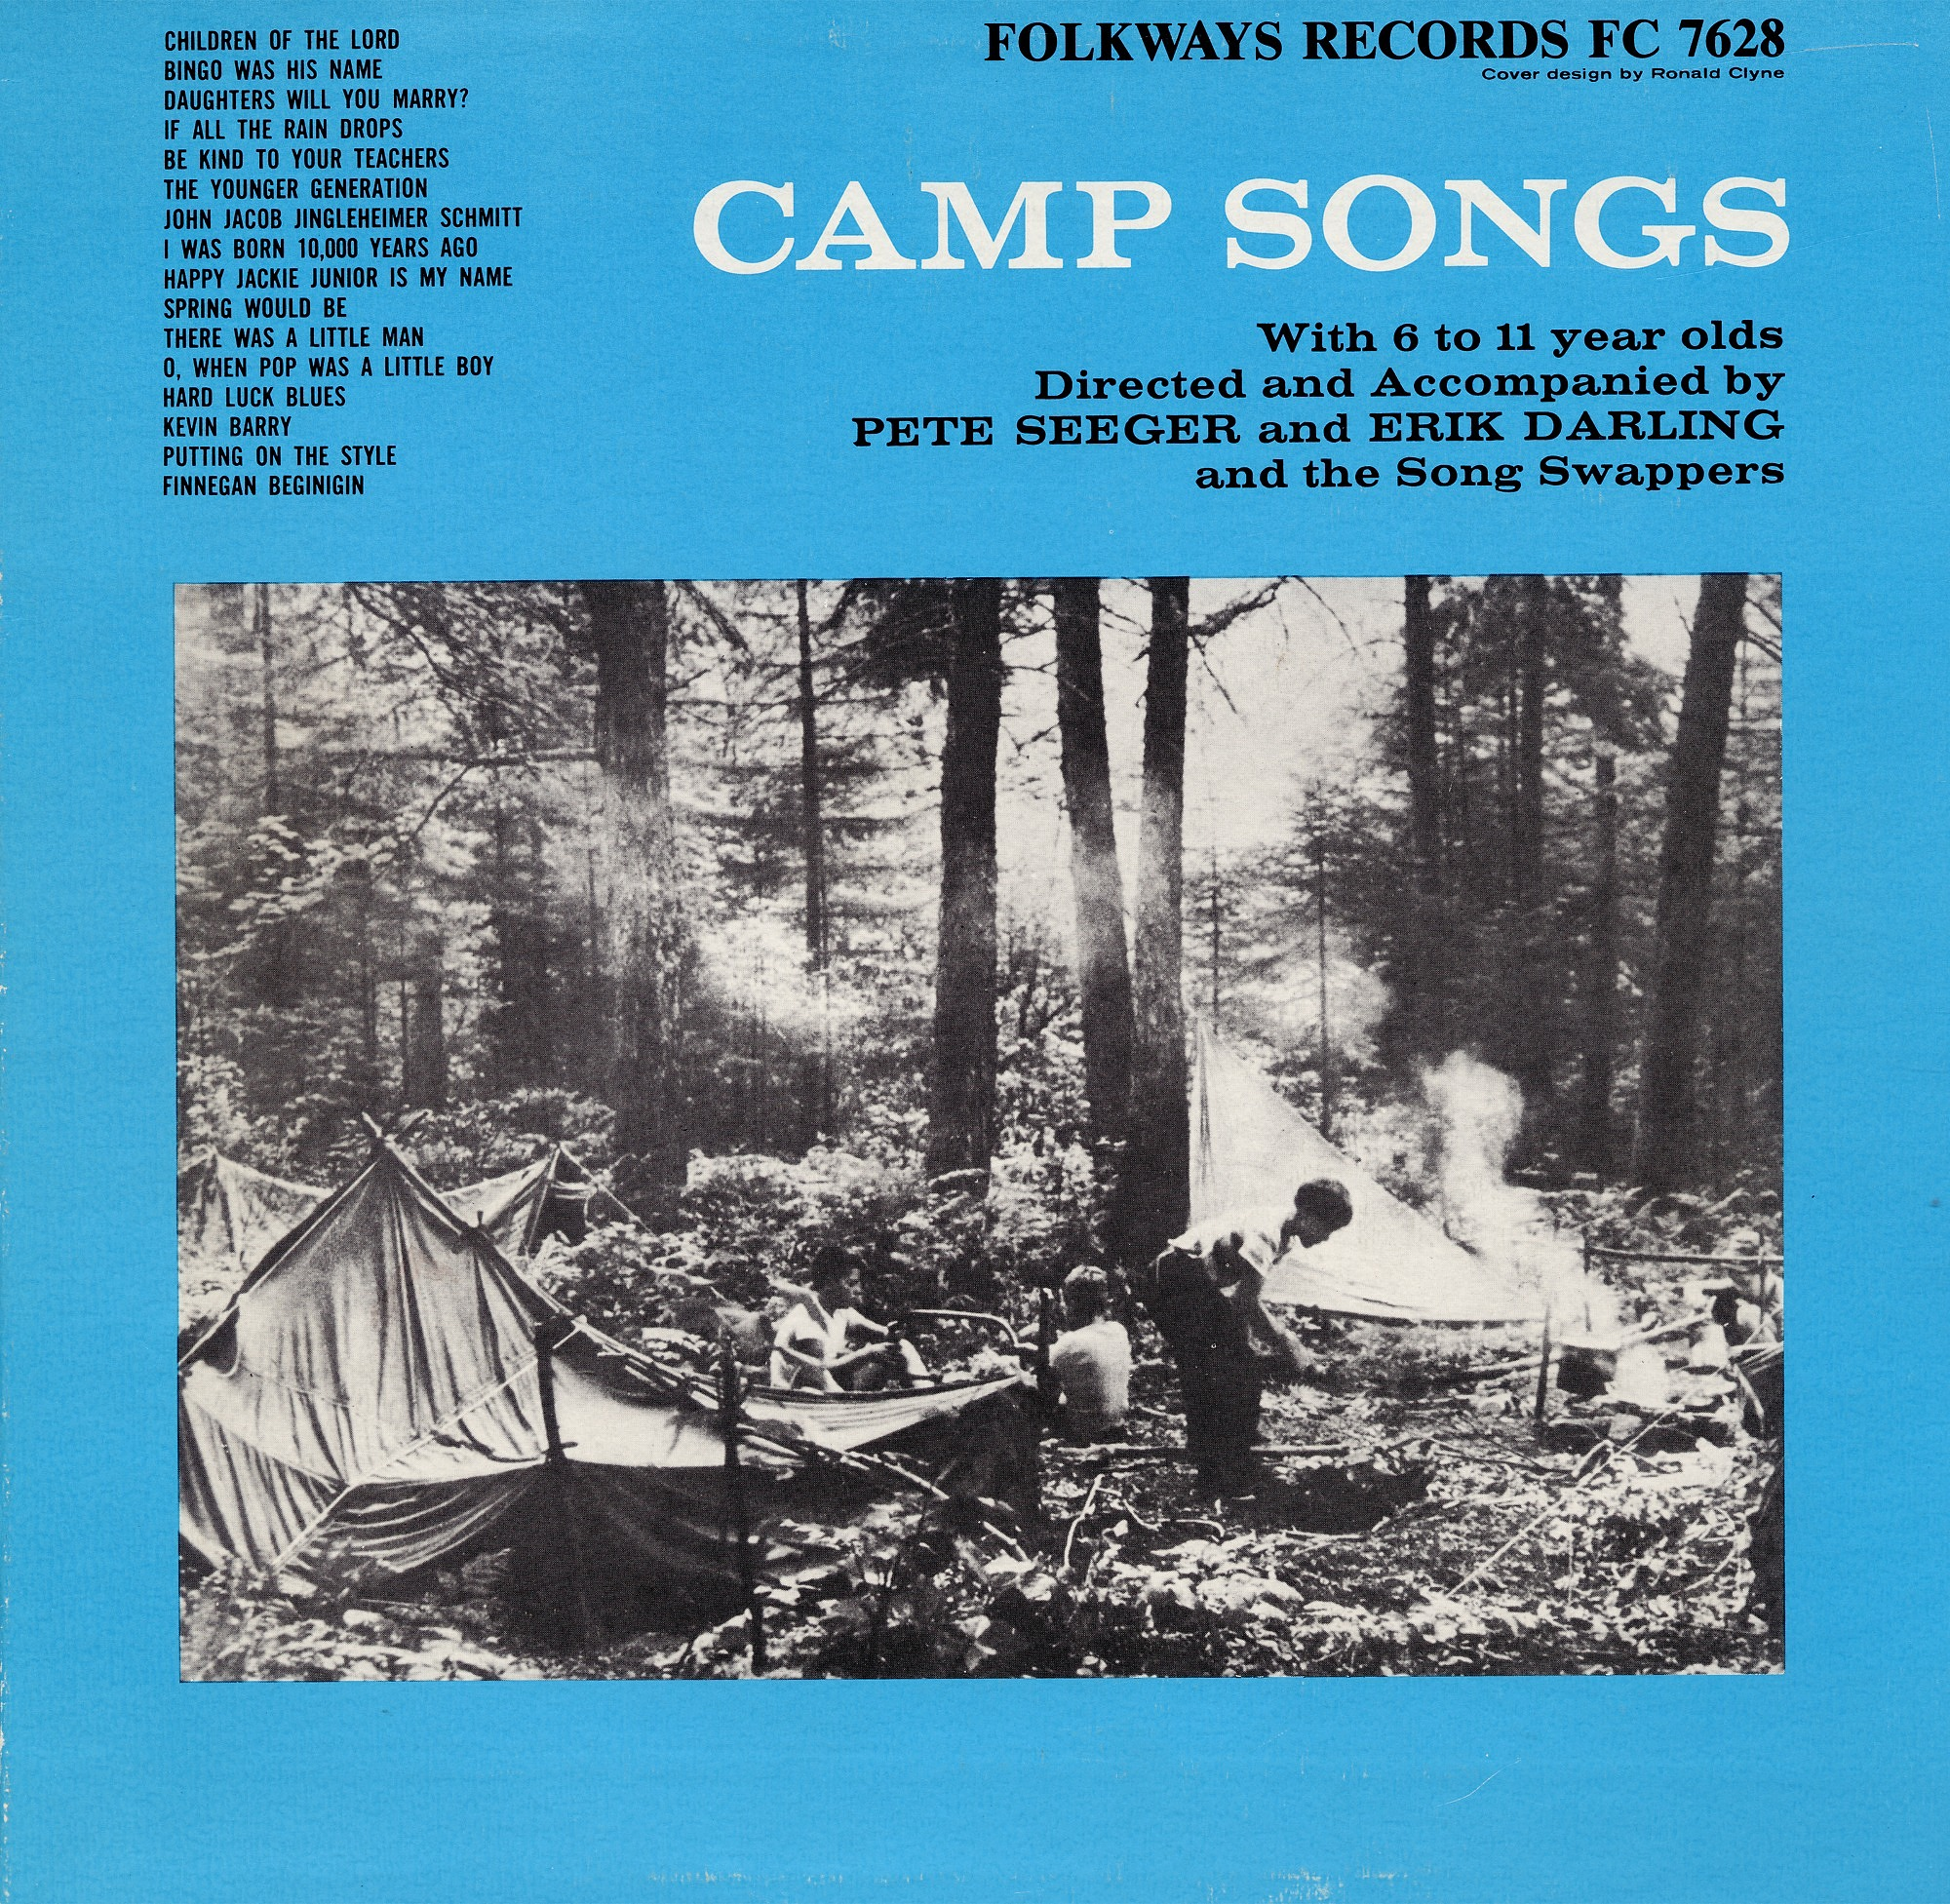 images for Camp songs sound recording : with 6, 7, 8, 9, 10, and 11 year olds / directed and accompanied by Pete Seeger and Erik Darling and the Song Swappers